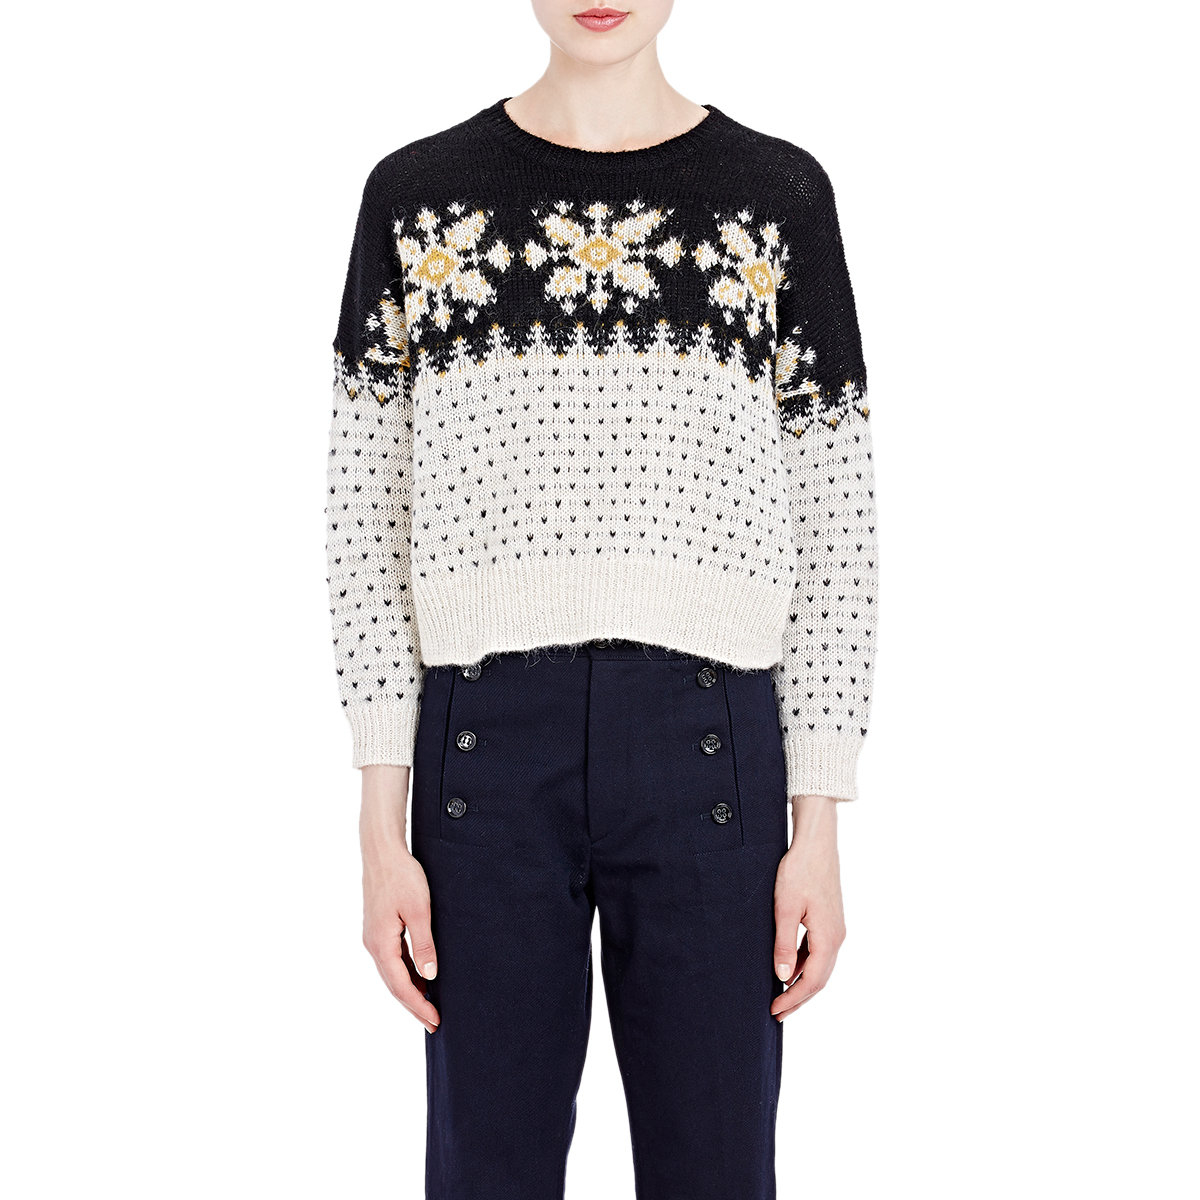 Étoile isabel marant Women's Fair Isle Gillian Sweater in Black | Lyst